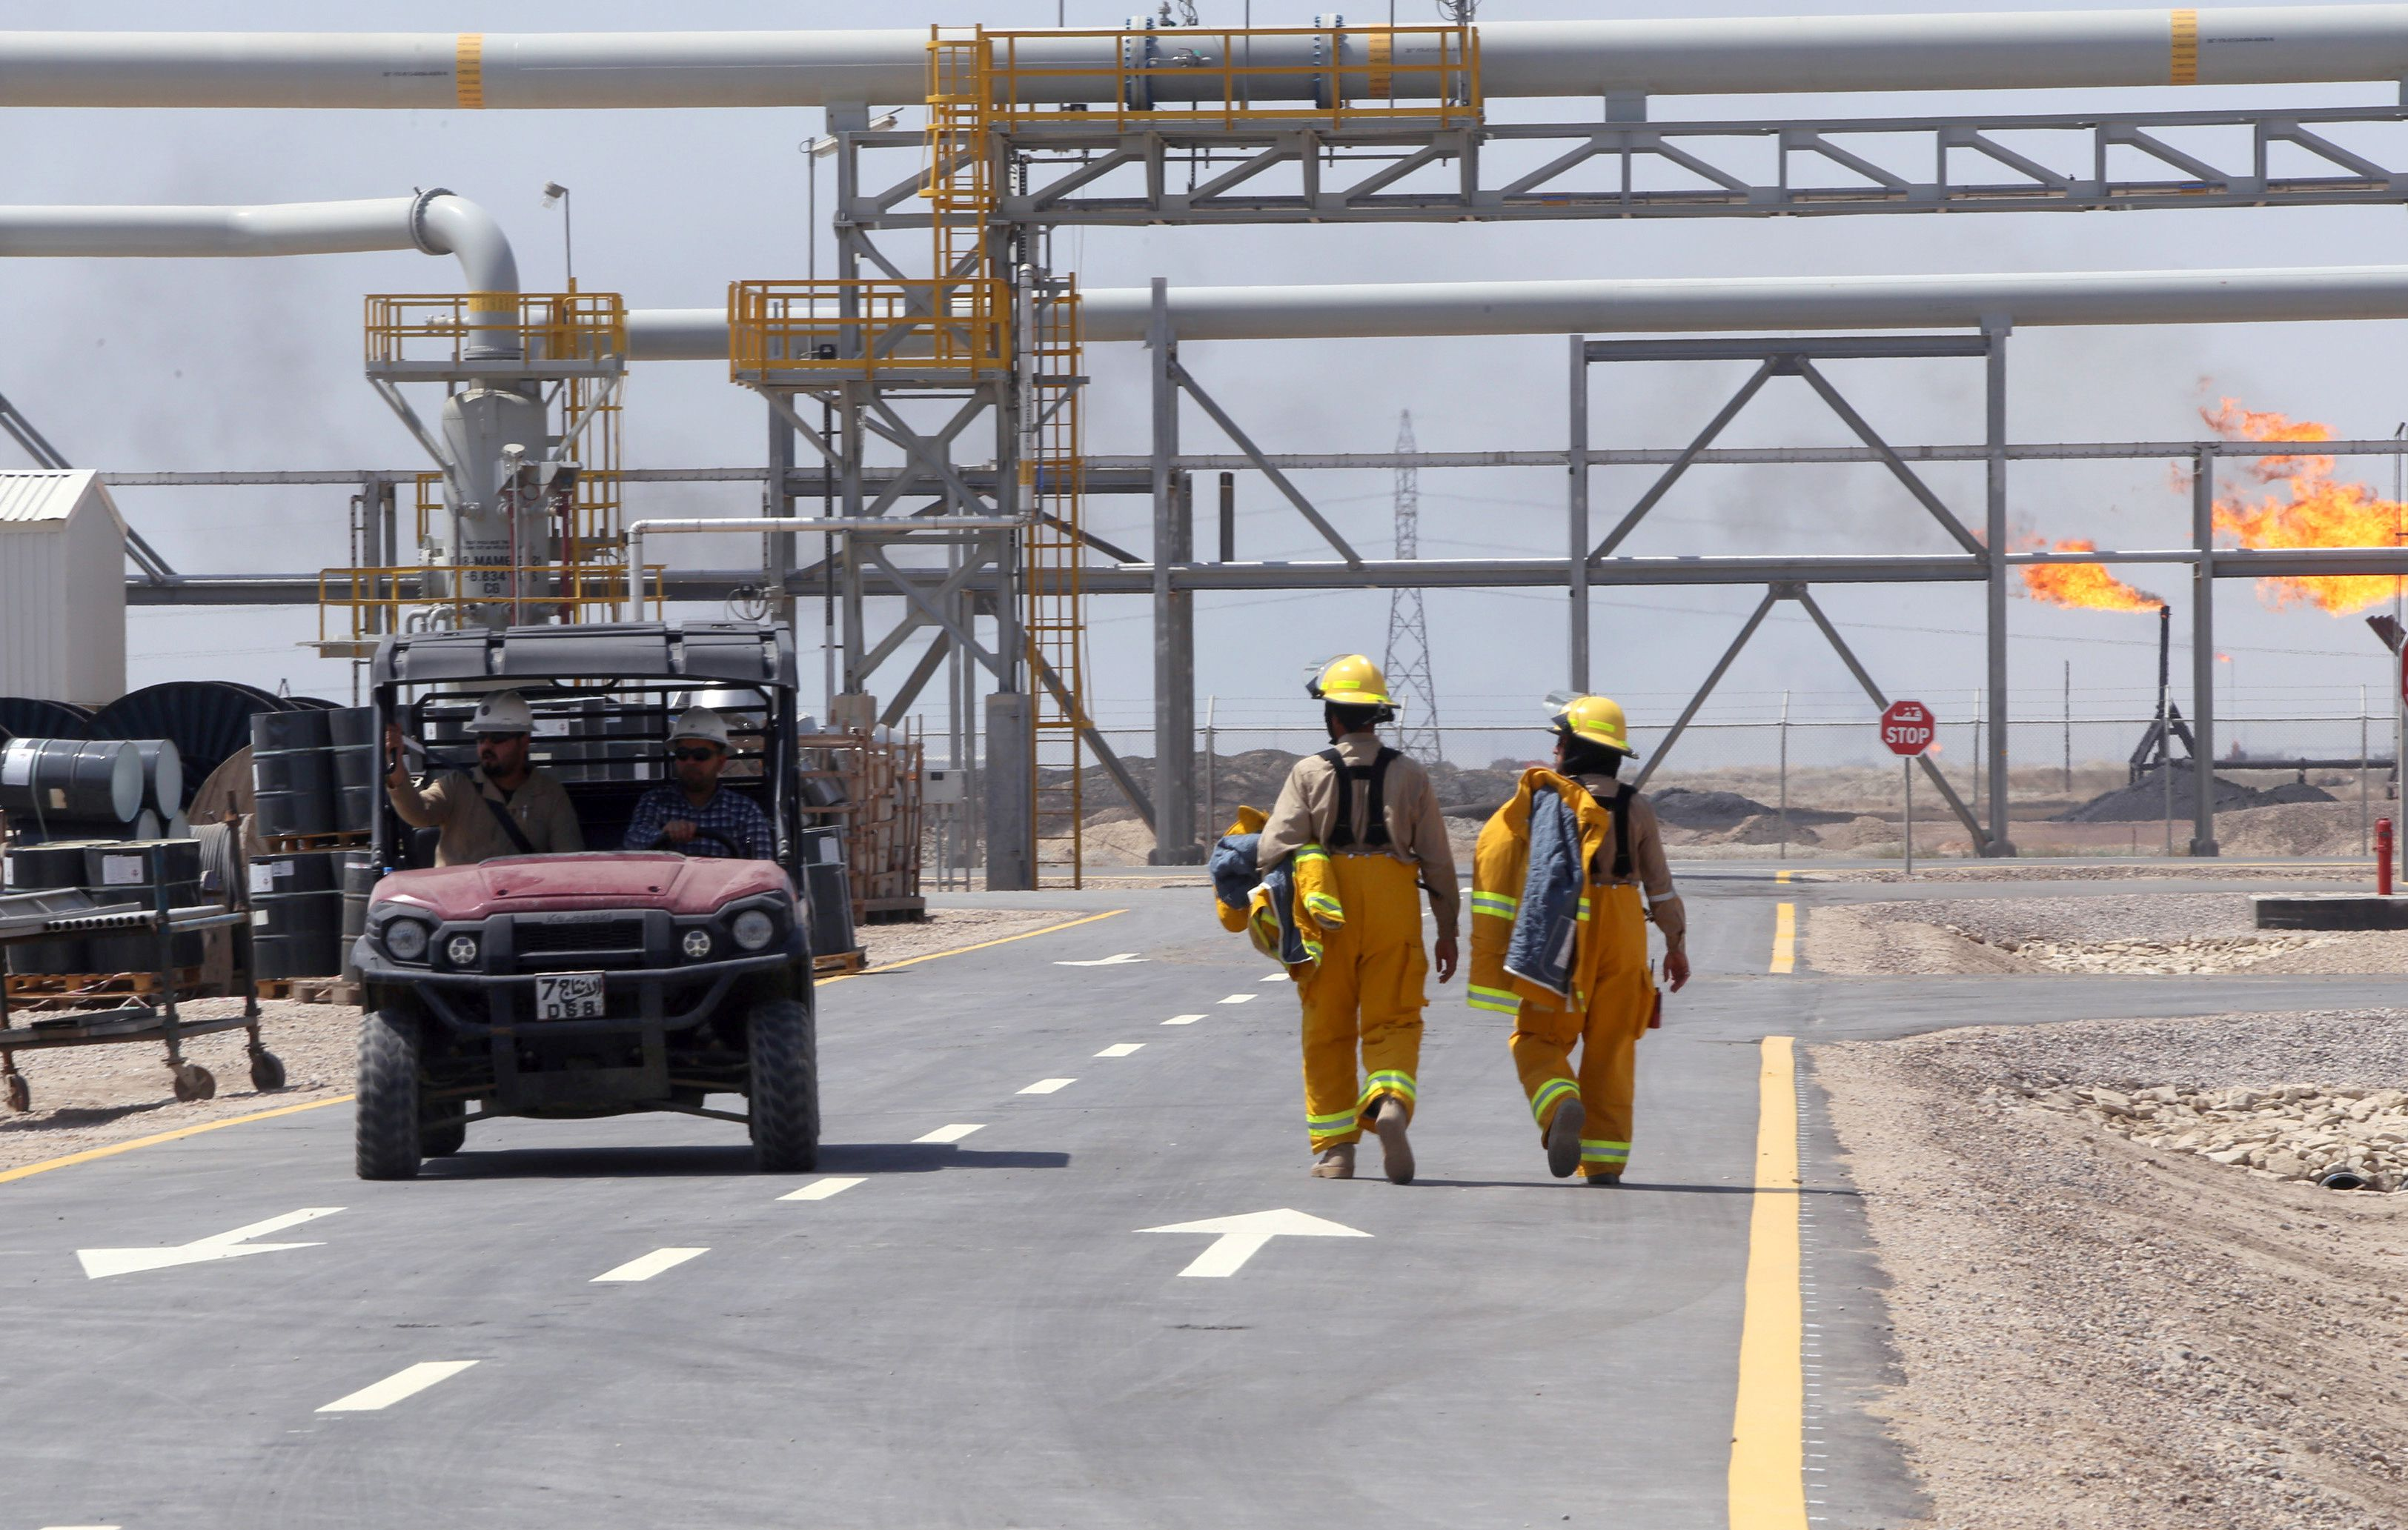 Foreign oil firms site in Basra, Iraq hit by rocket, two Iraqi workers reported injured